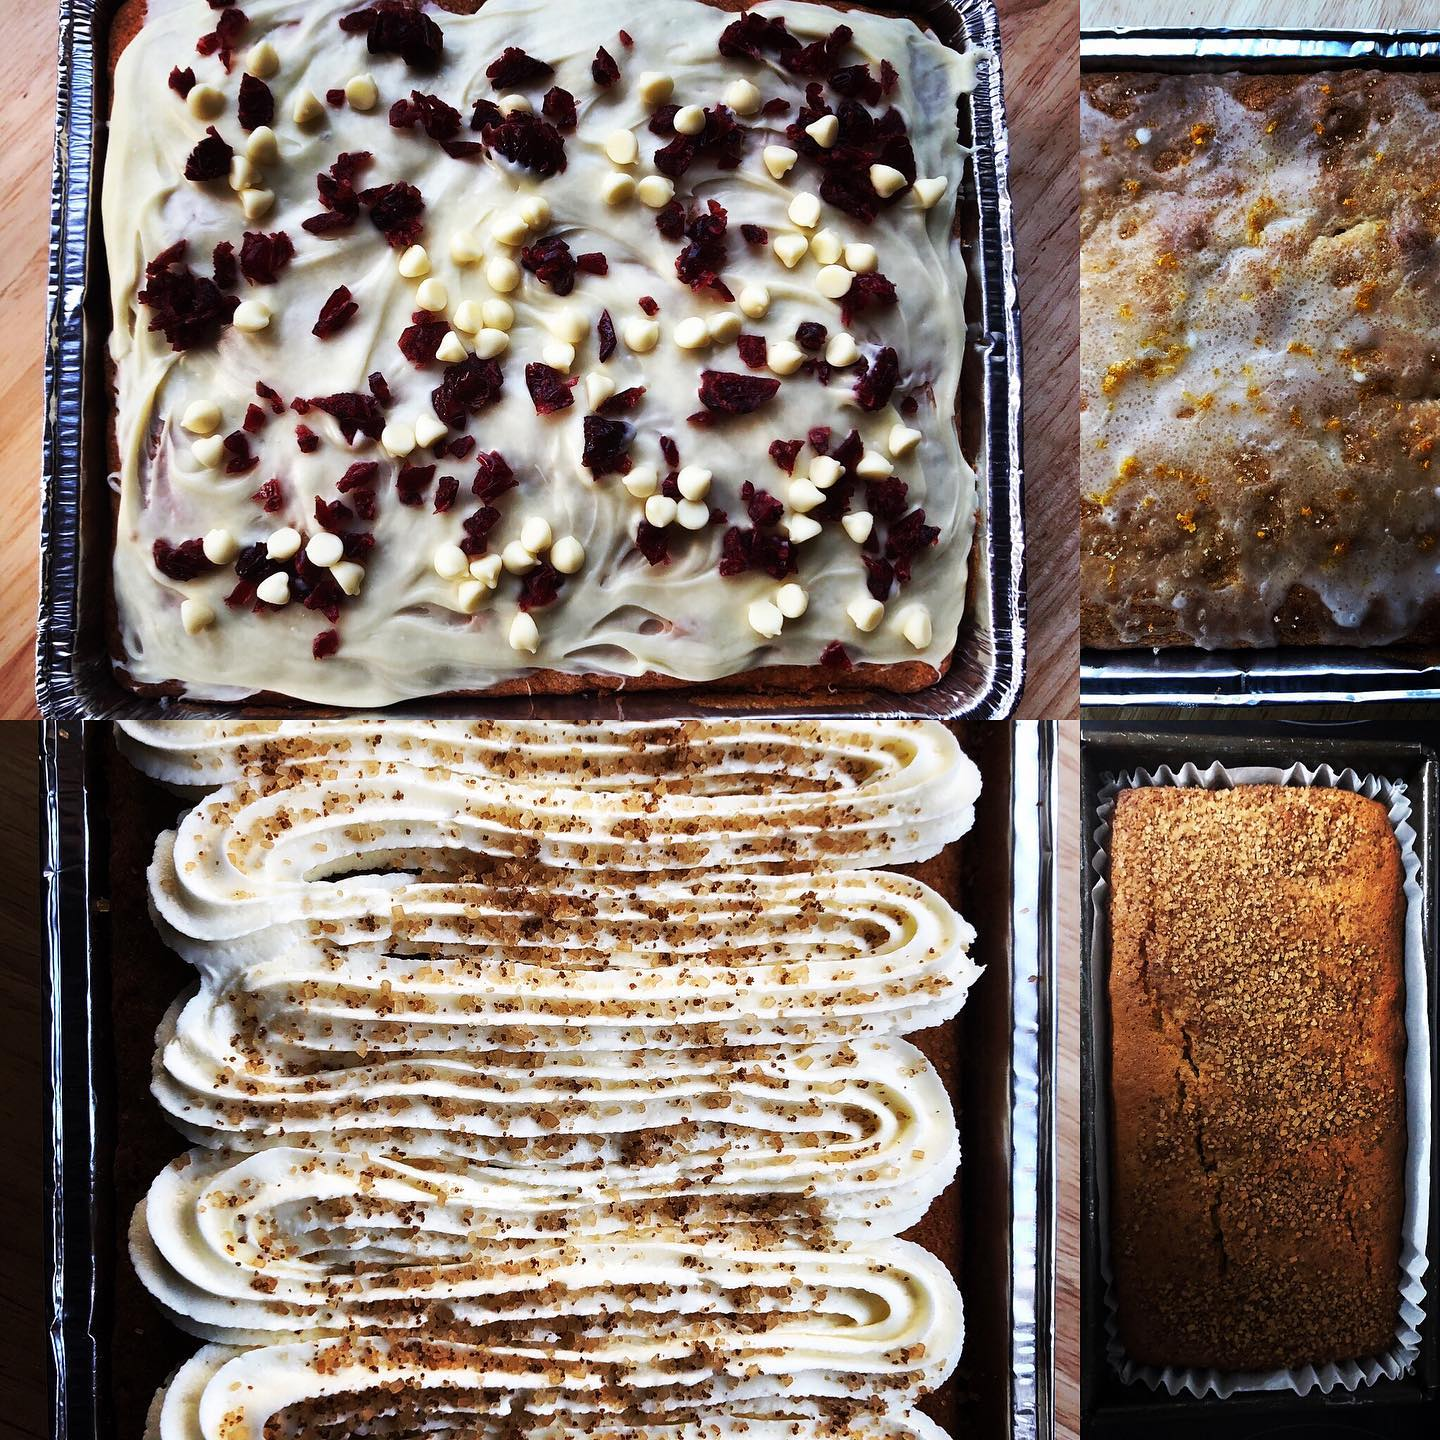 traybake selection